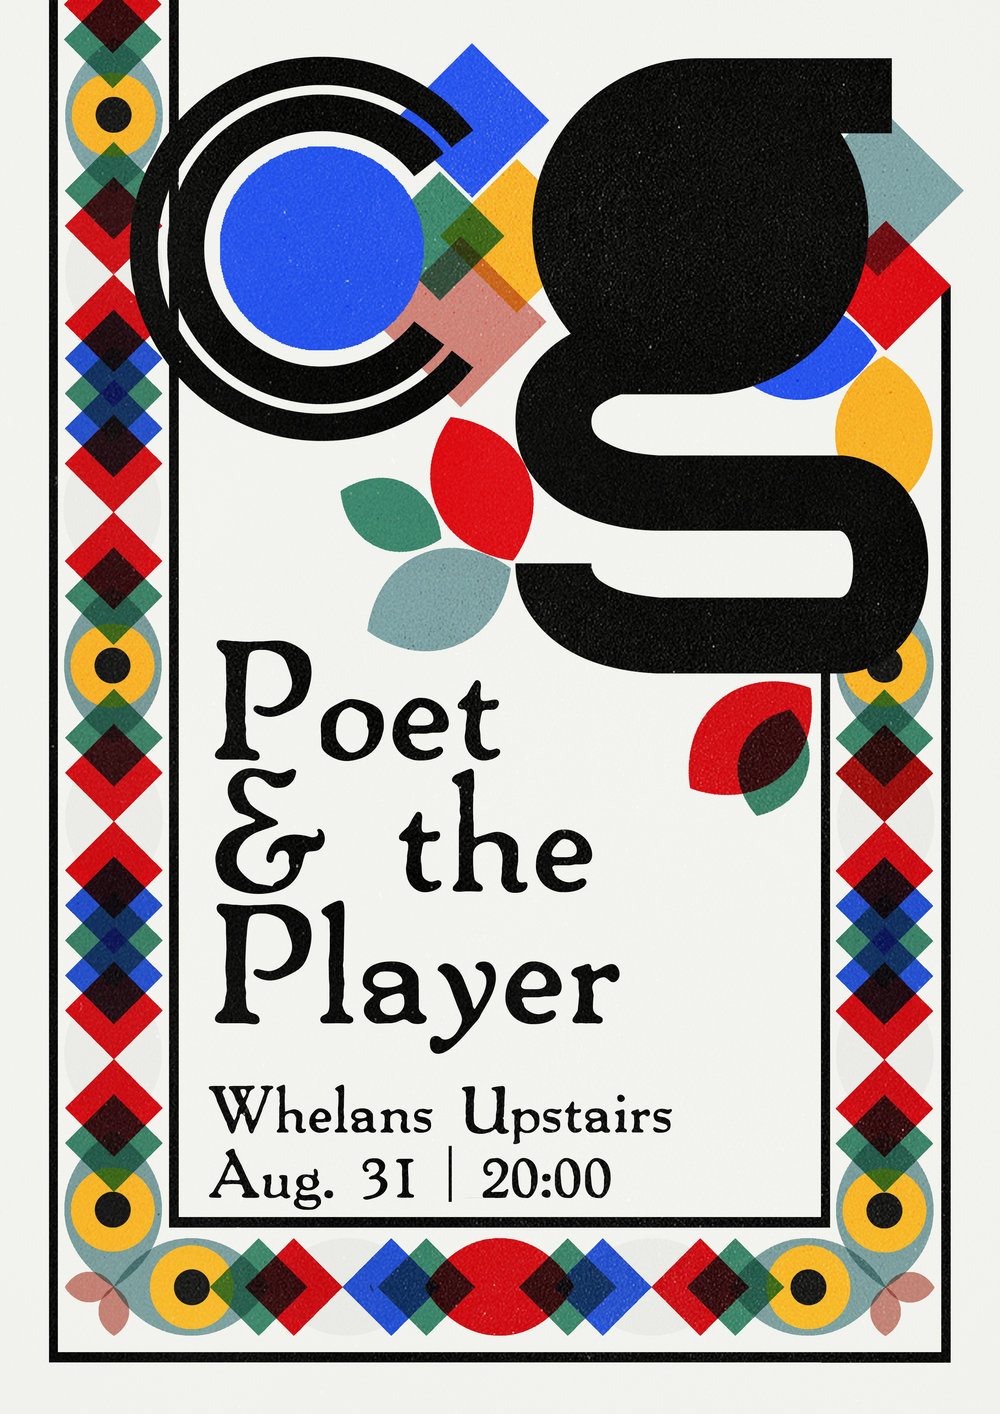 Poet and the Player